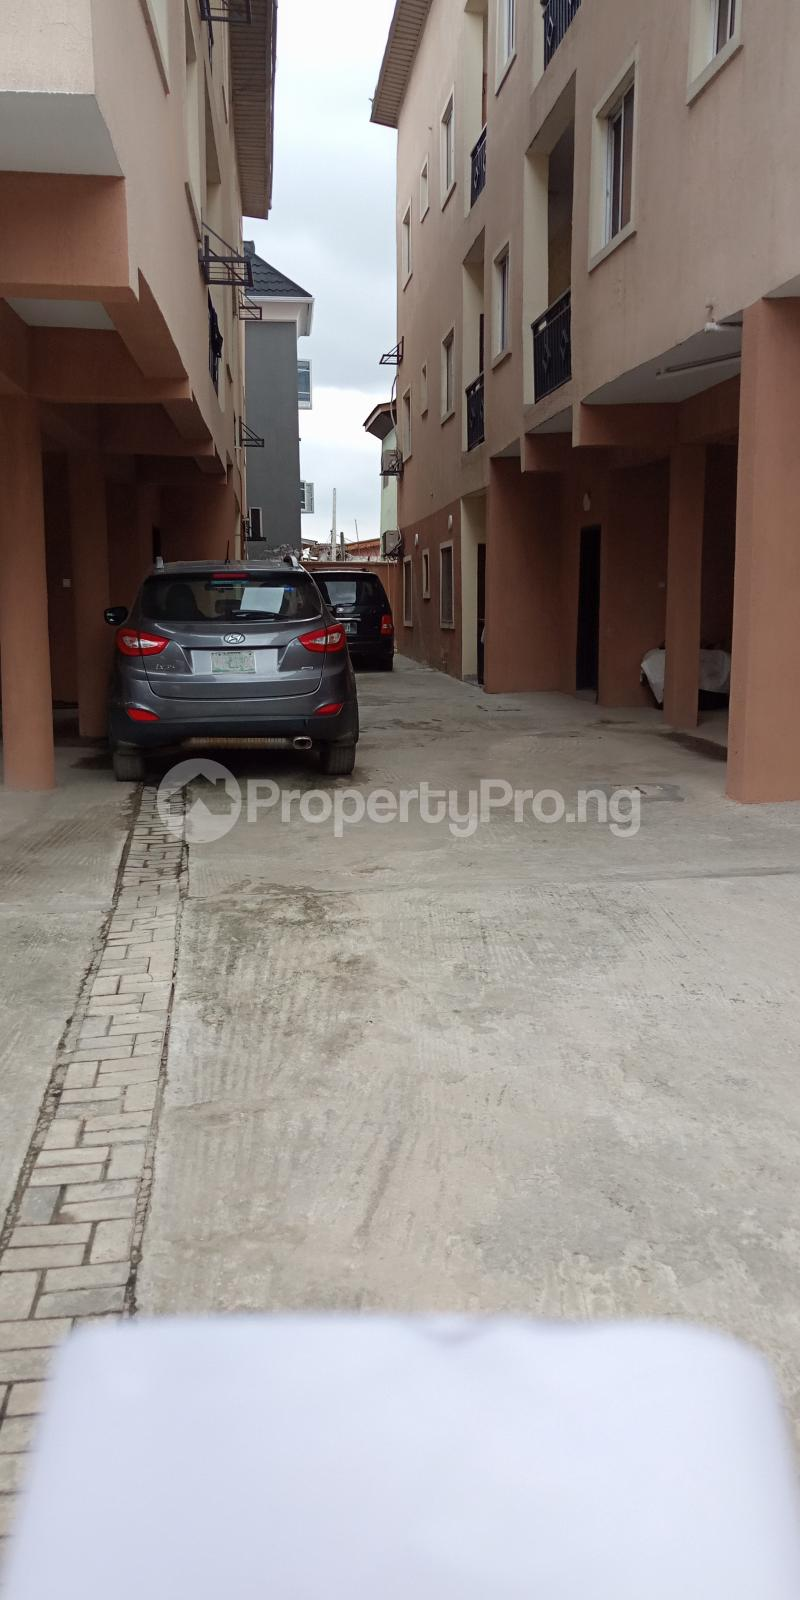 3 bedroom Flat / Apartment for rent Alagomeji Alagomeji Yaba Lagos - 9